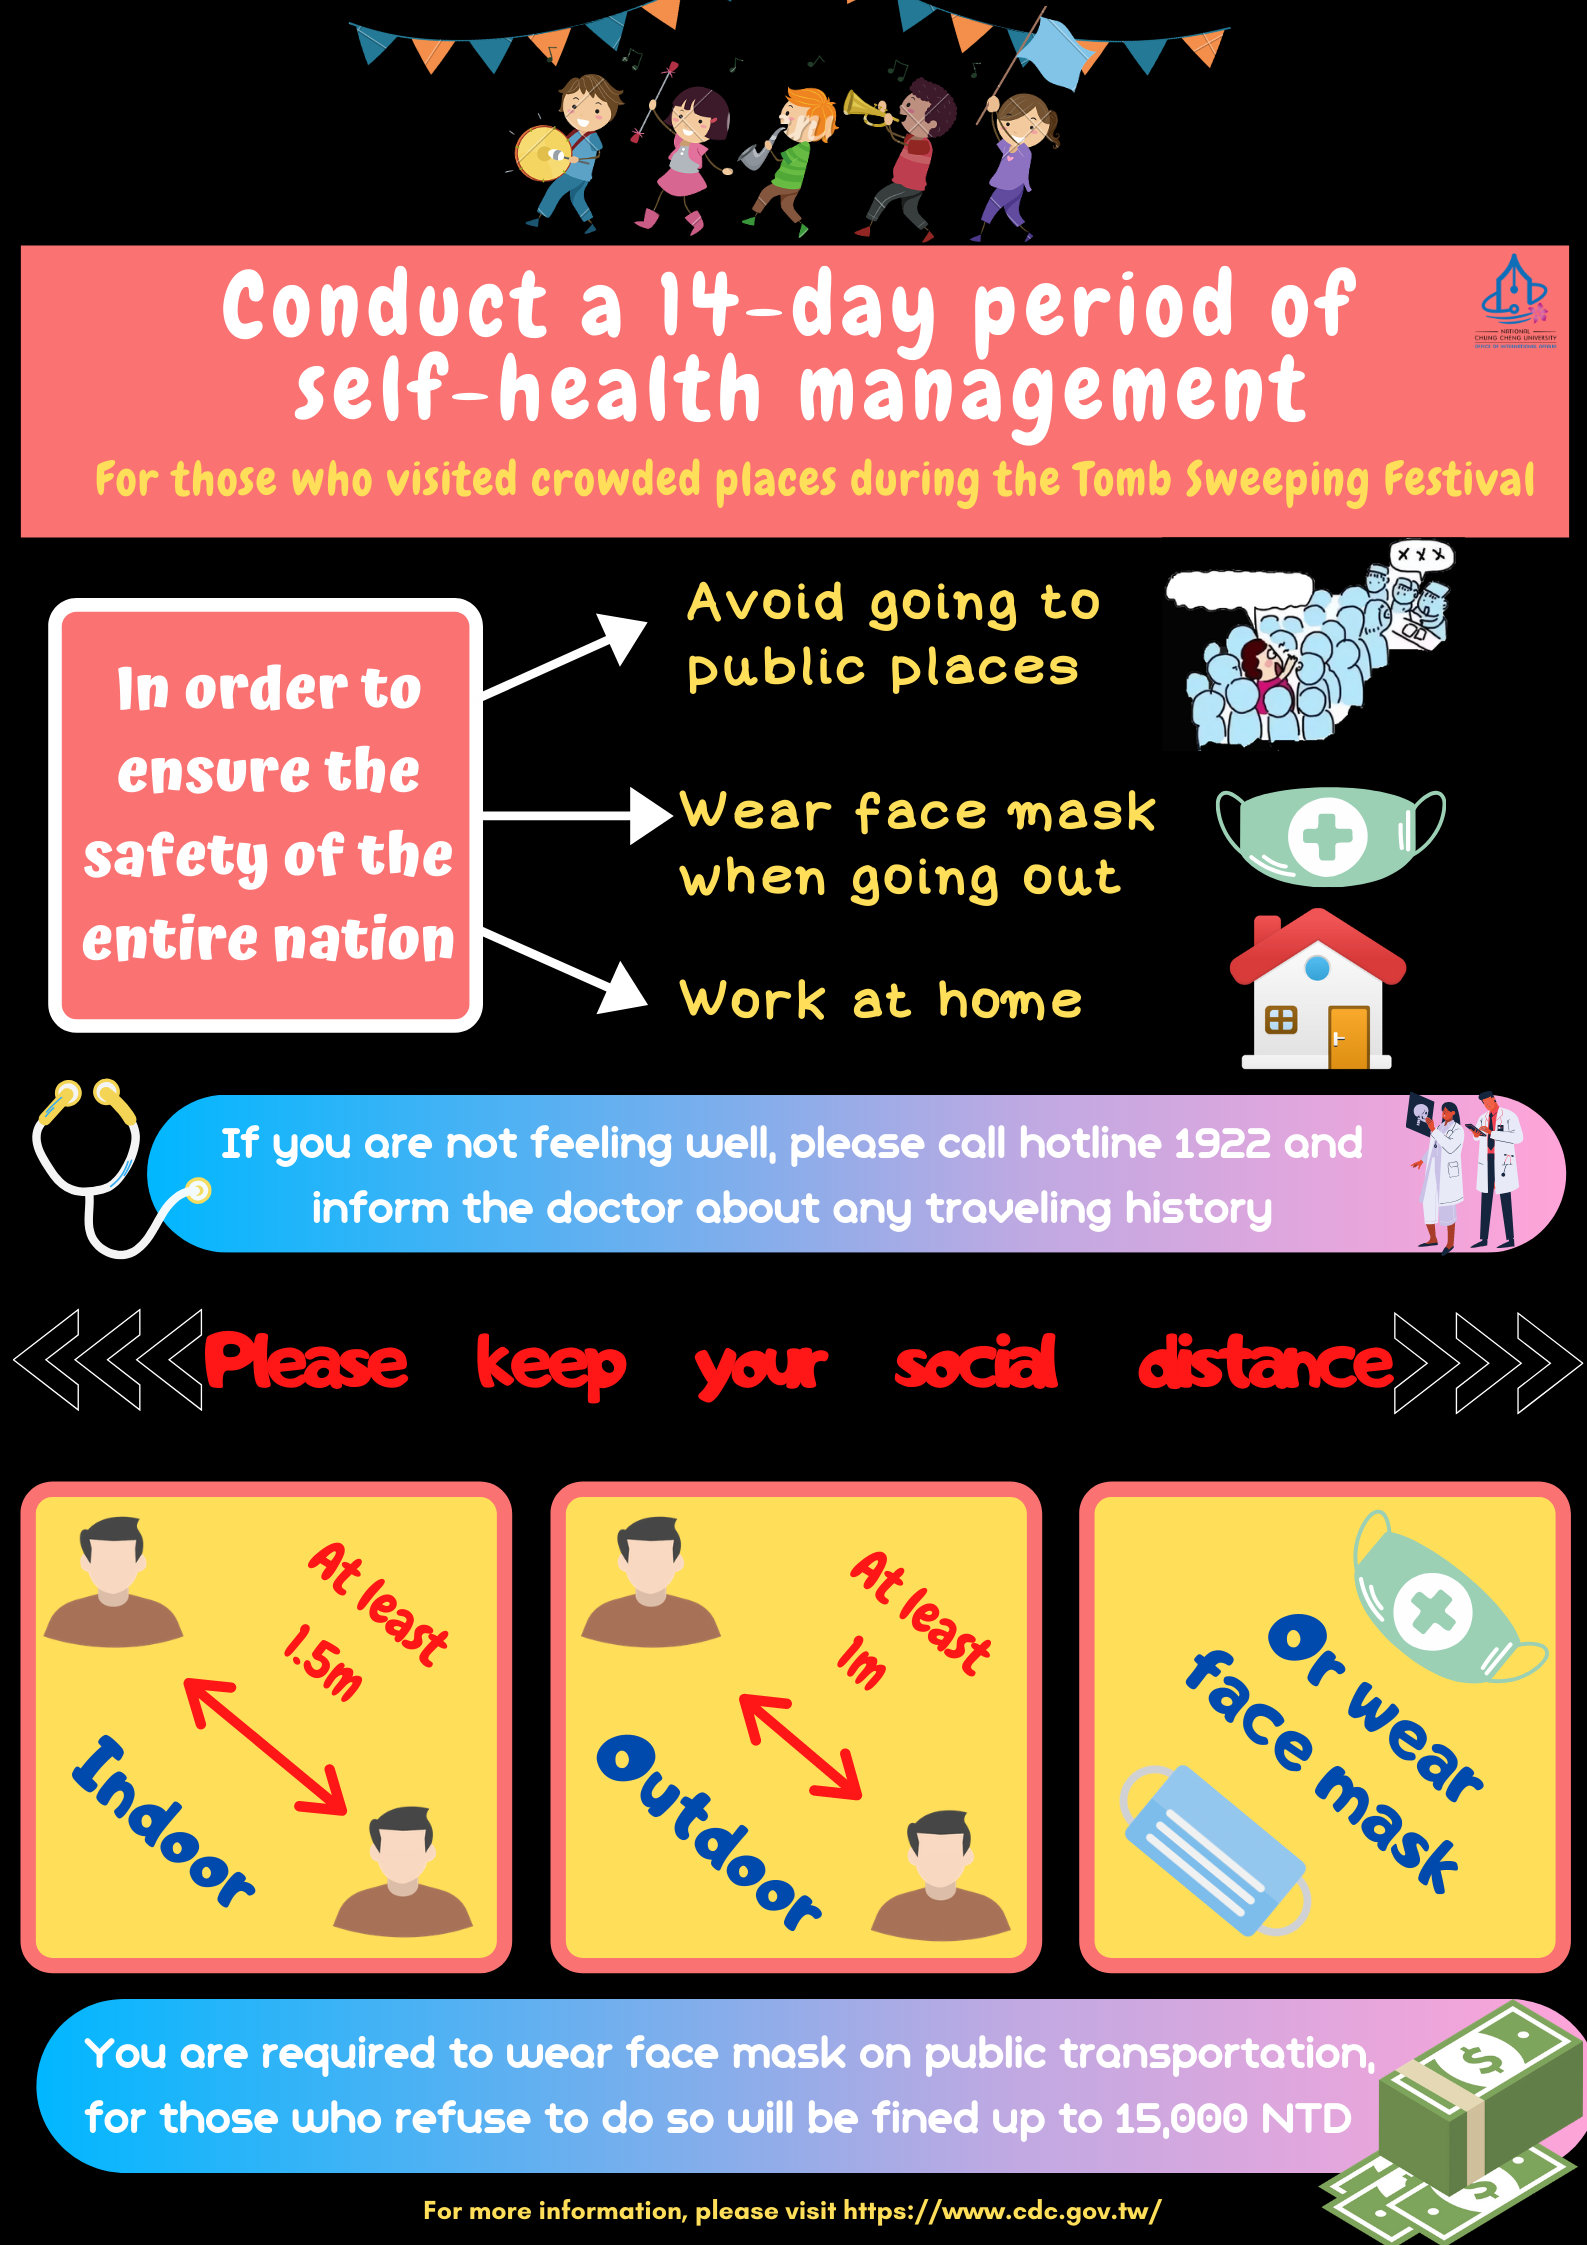 conduct_a_14-day_period_of_self-health_management,_if_you_visit_crowded_places_during_the_tomb_sweeping_festival